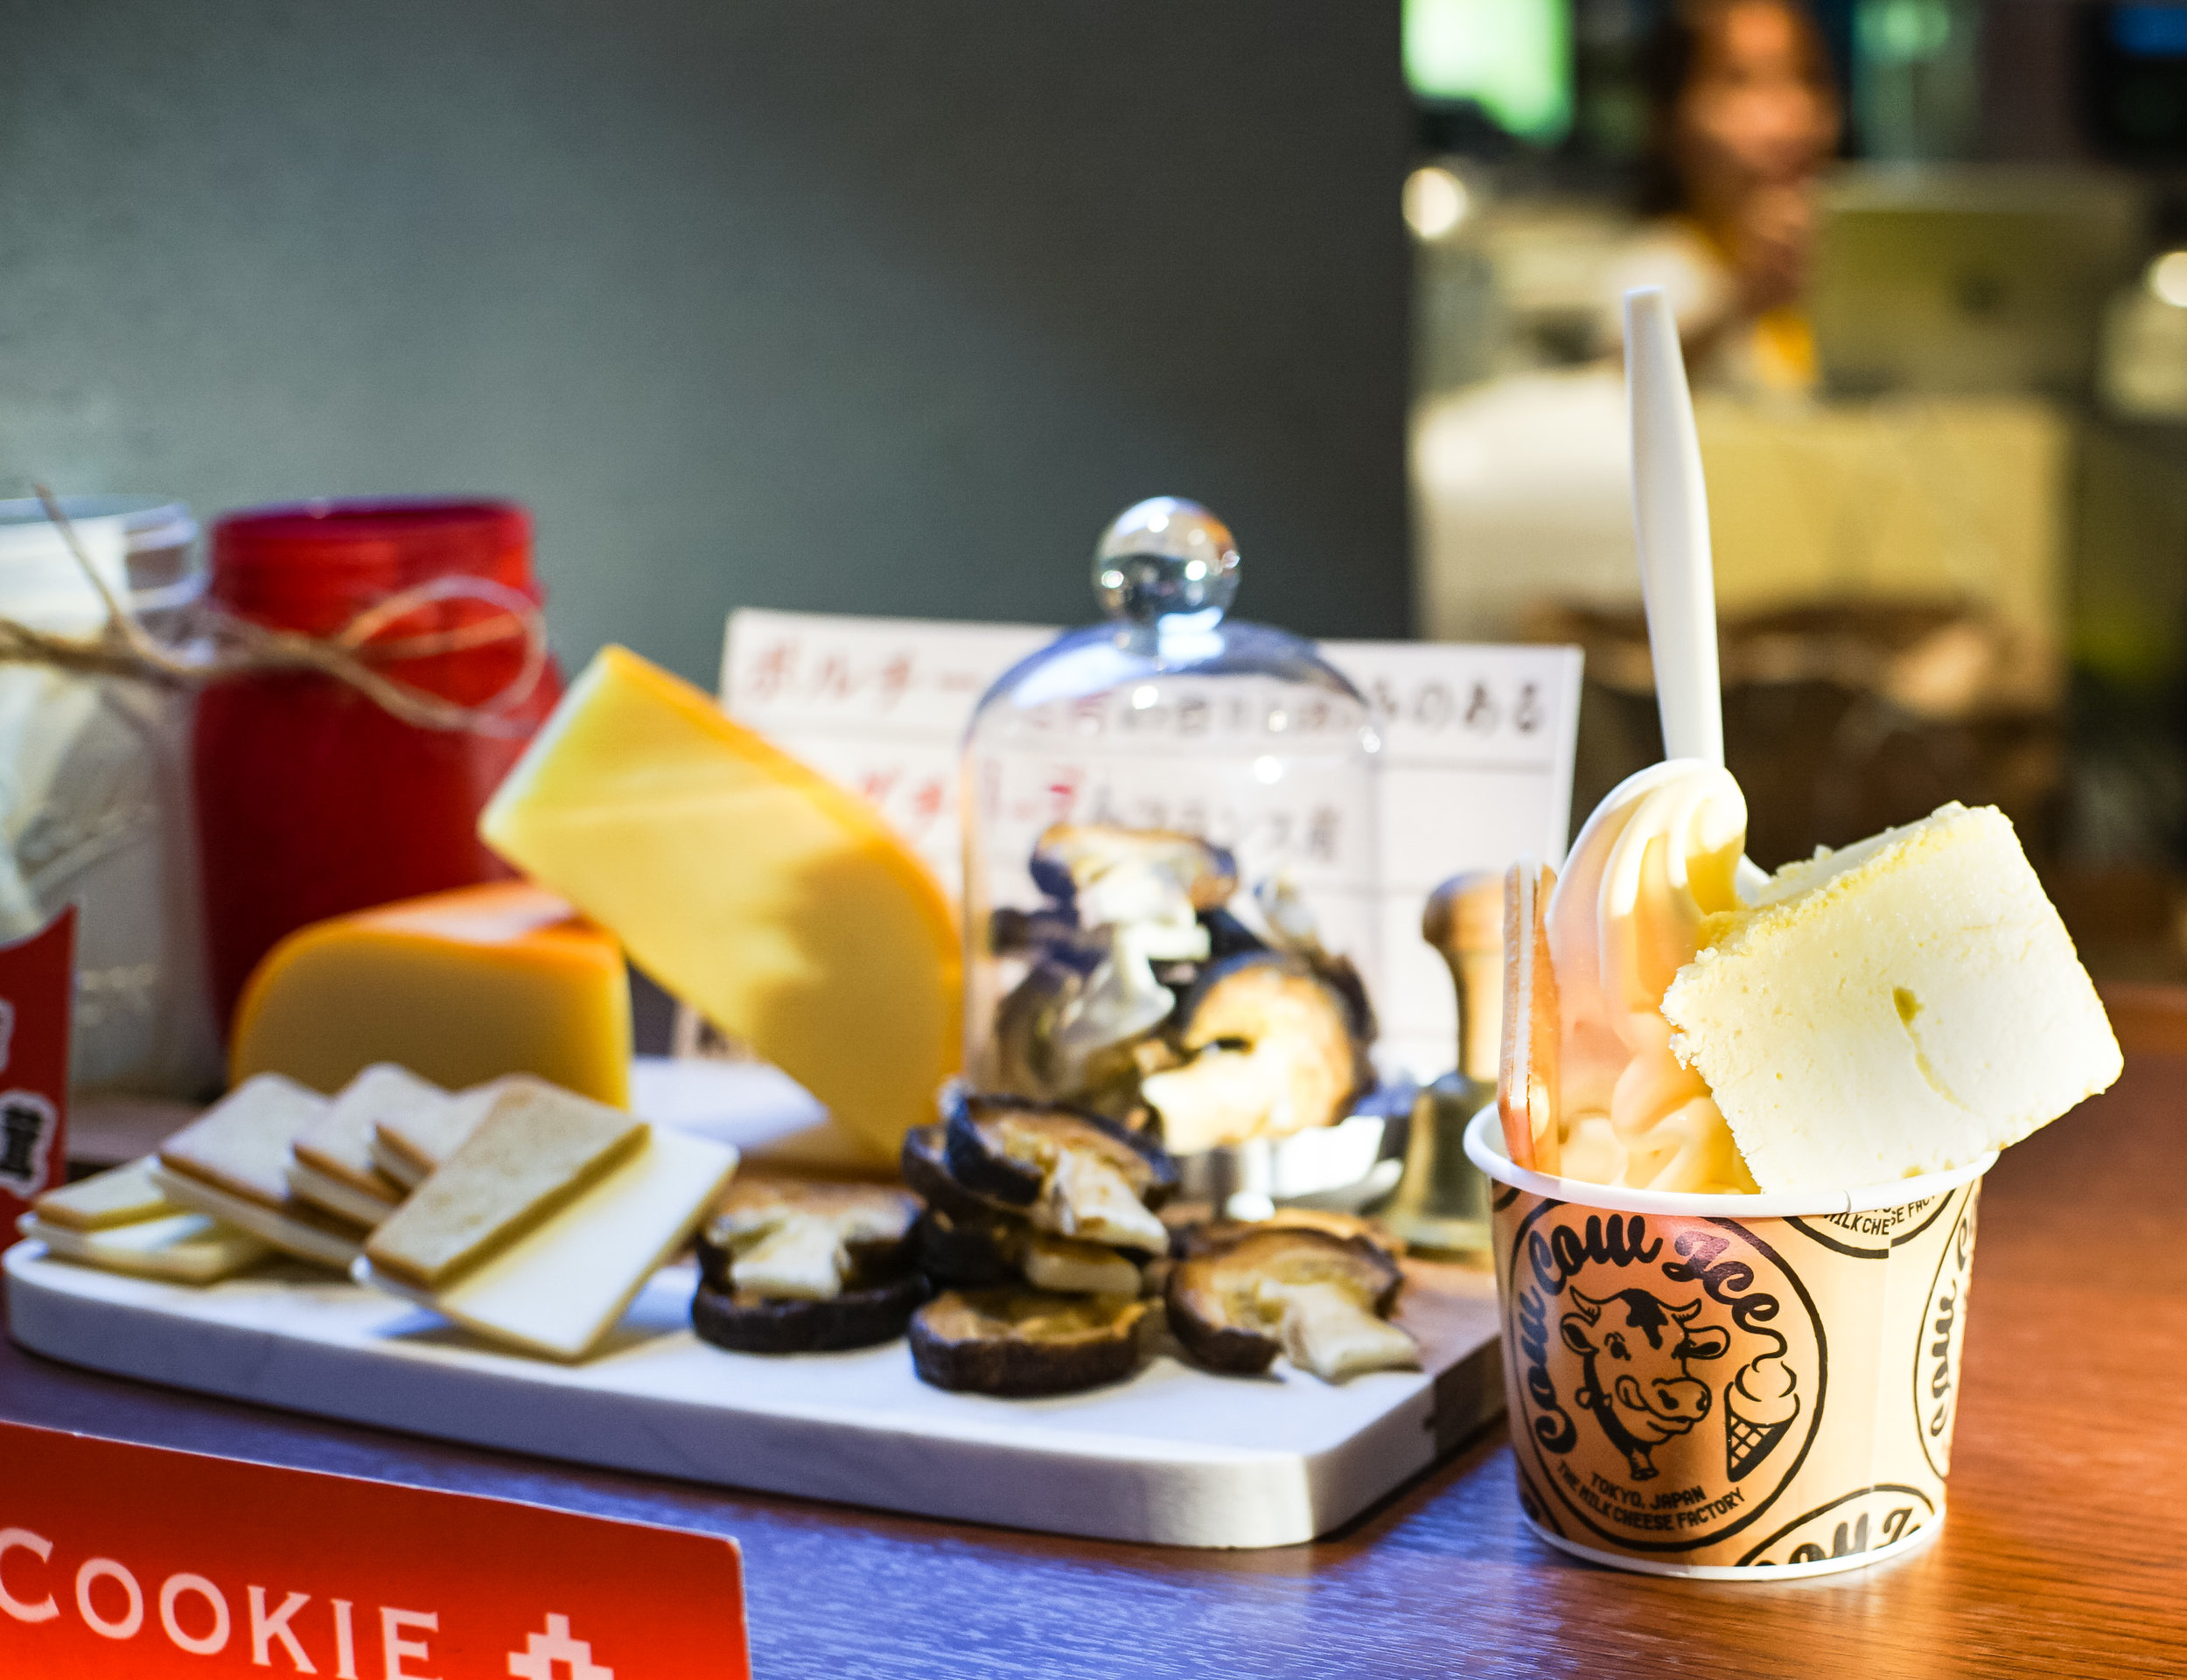 You can see Tokyo Milk Cheese Factory proudly display their cheese and various ingredients to the left, and our Cow Cow Sundae to the right.